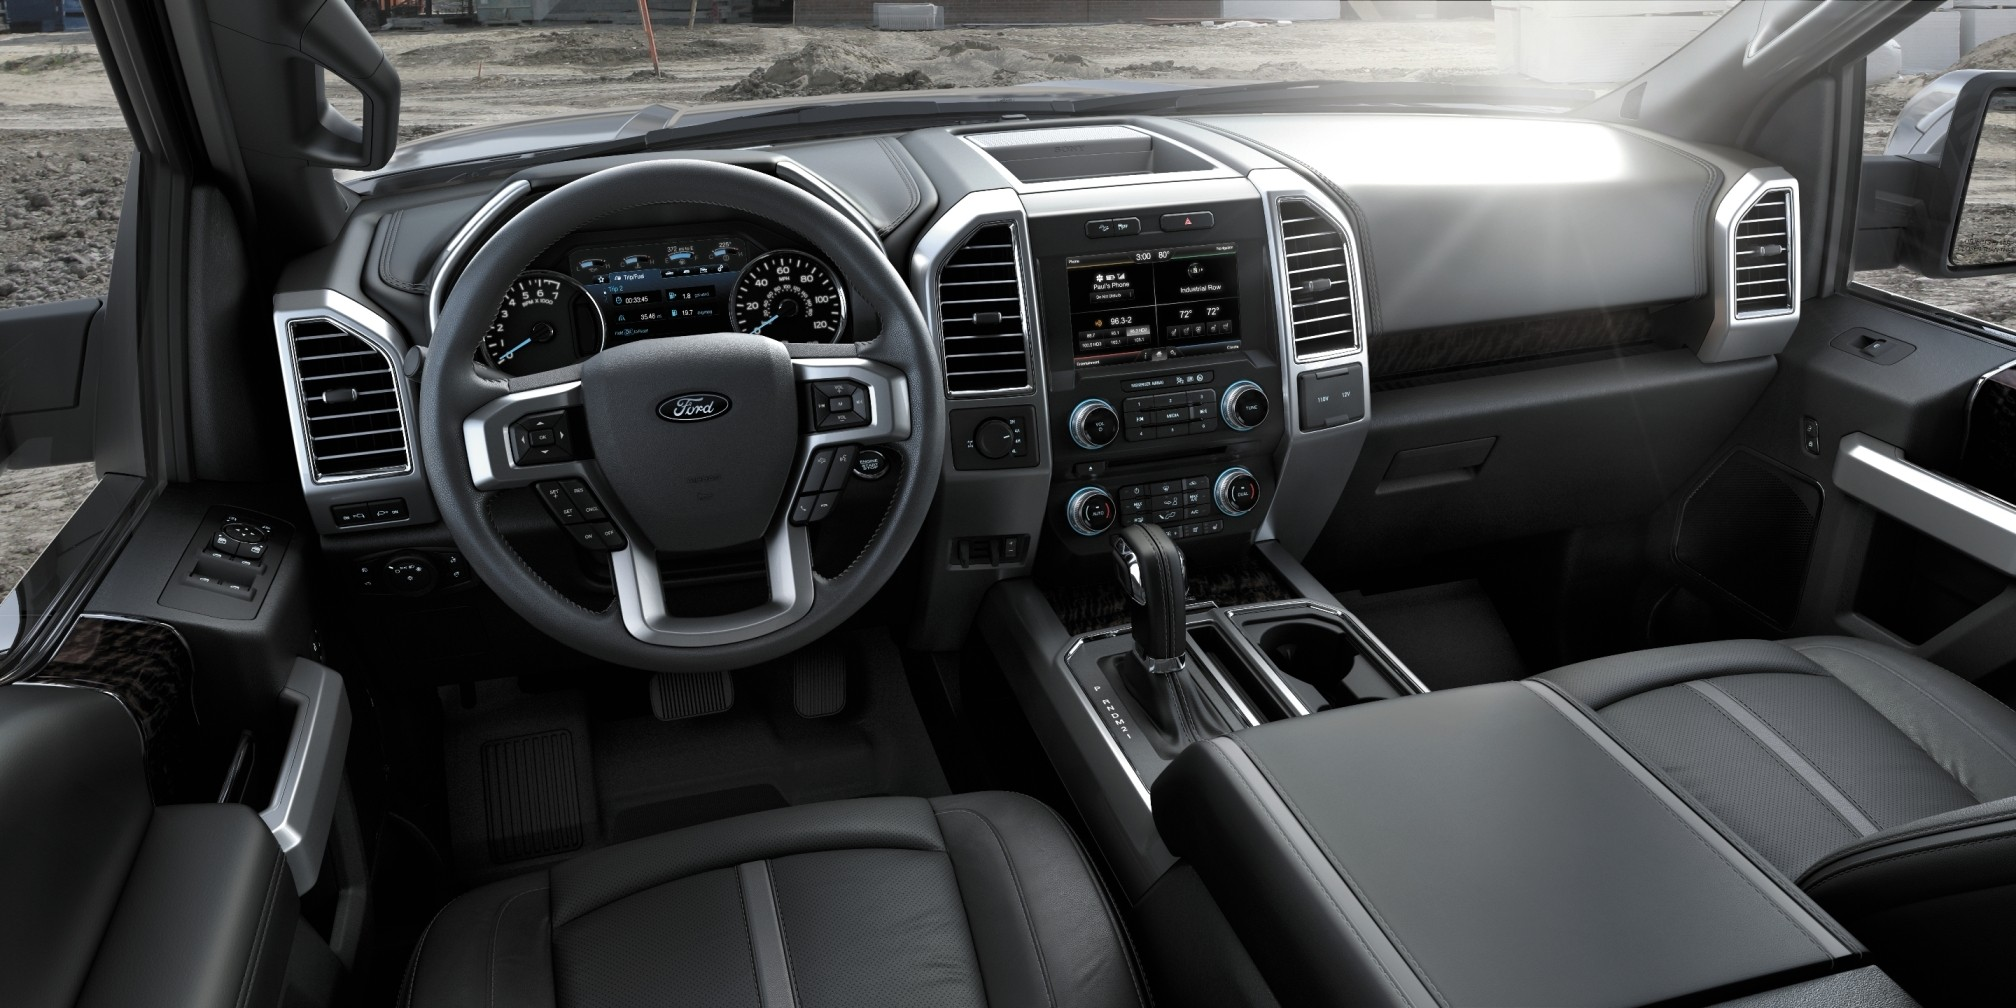 pens and business cards 2015 ford f 150 almost unbelieveably new interior - Ford Torino 2015 Interior